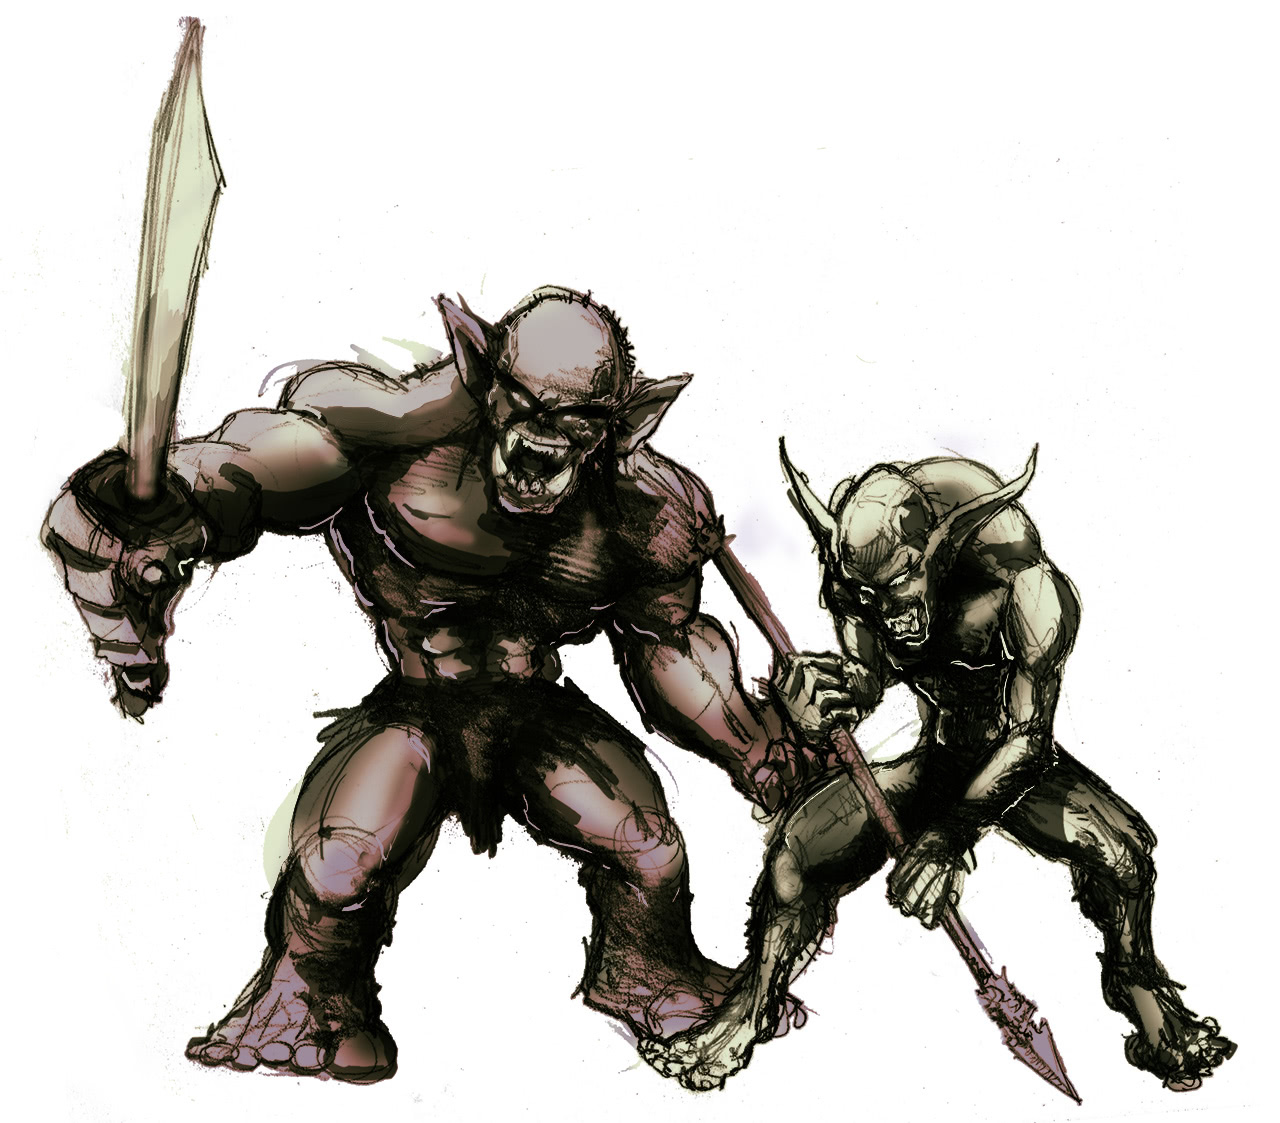 A picture of an orc and a goblin, armed.